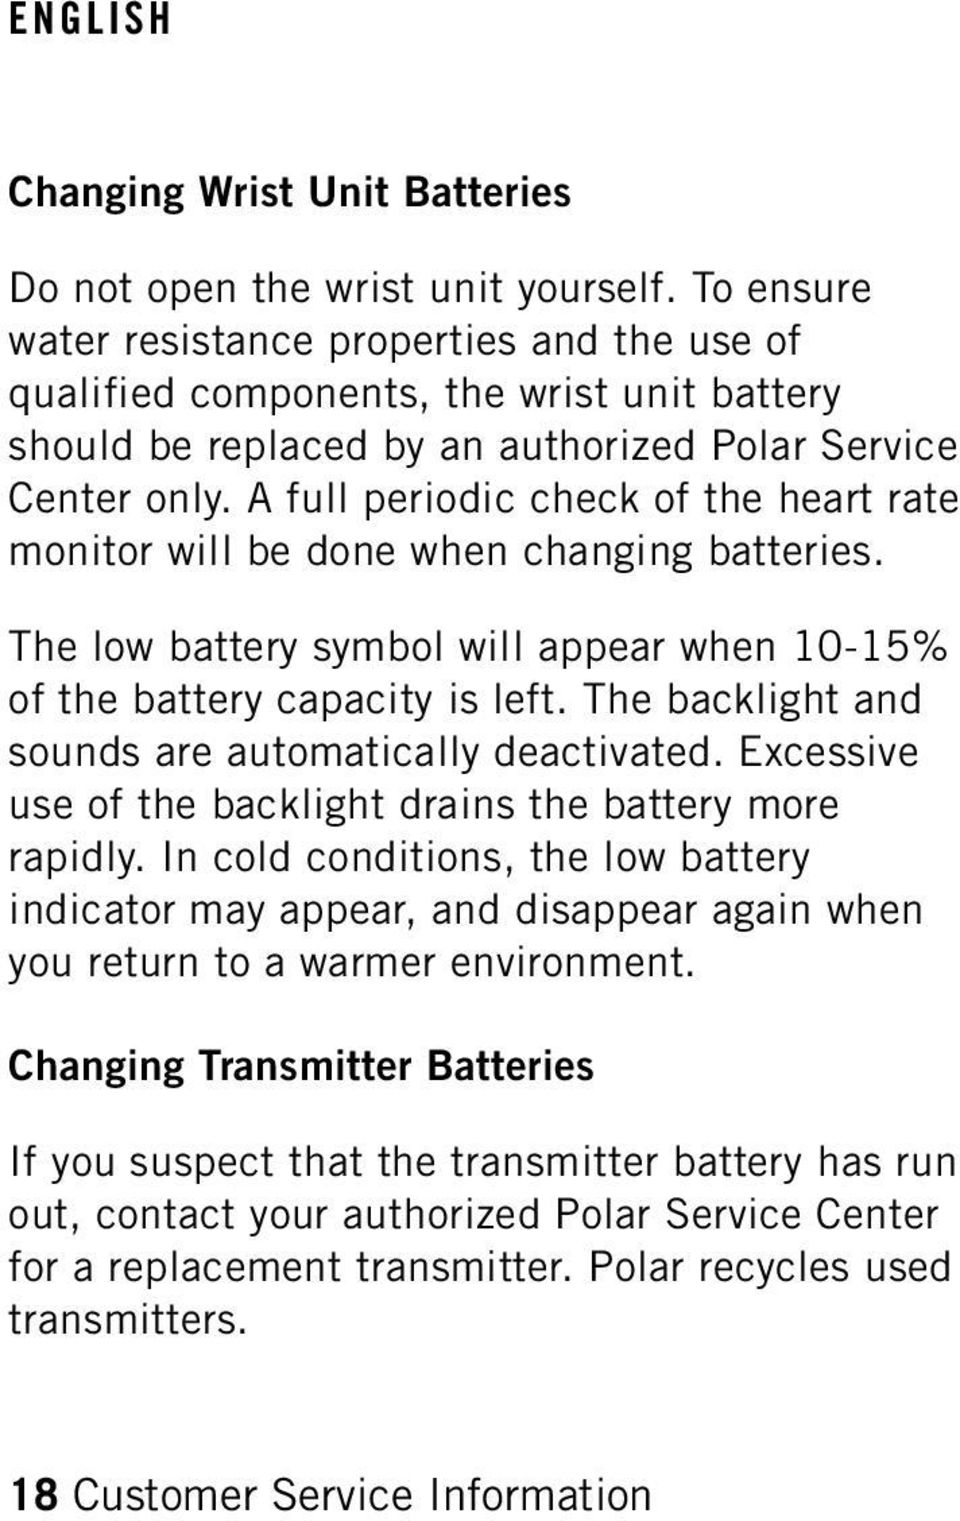 A full periodic check of the heart rate monitor will be done when changing batteries. The low battery symbol will appear when 10-15% of the battery capacity is left.